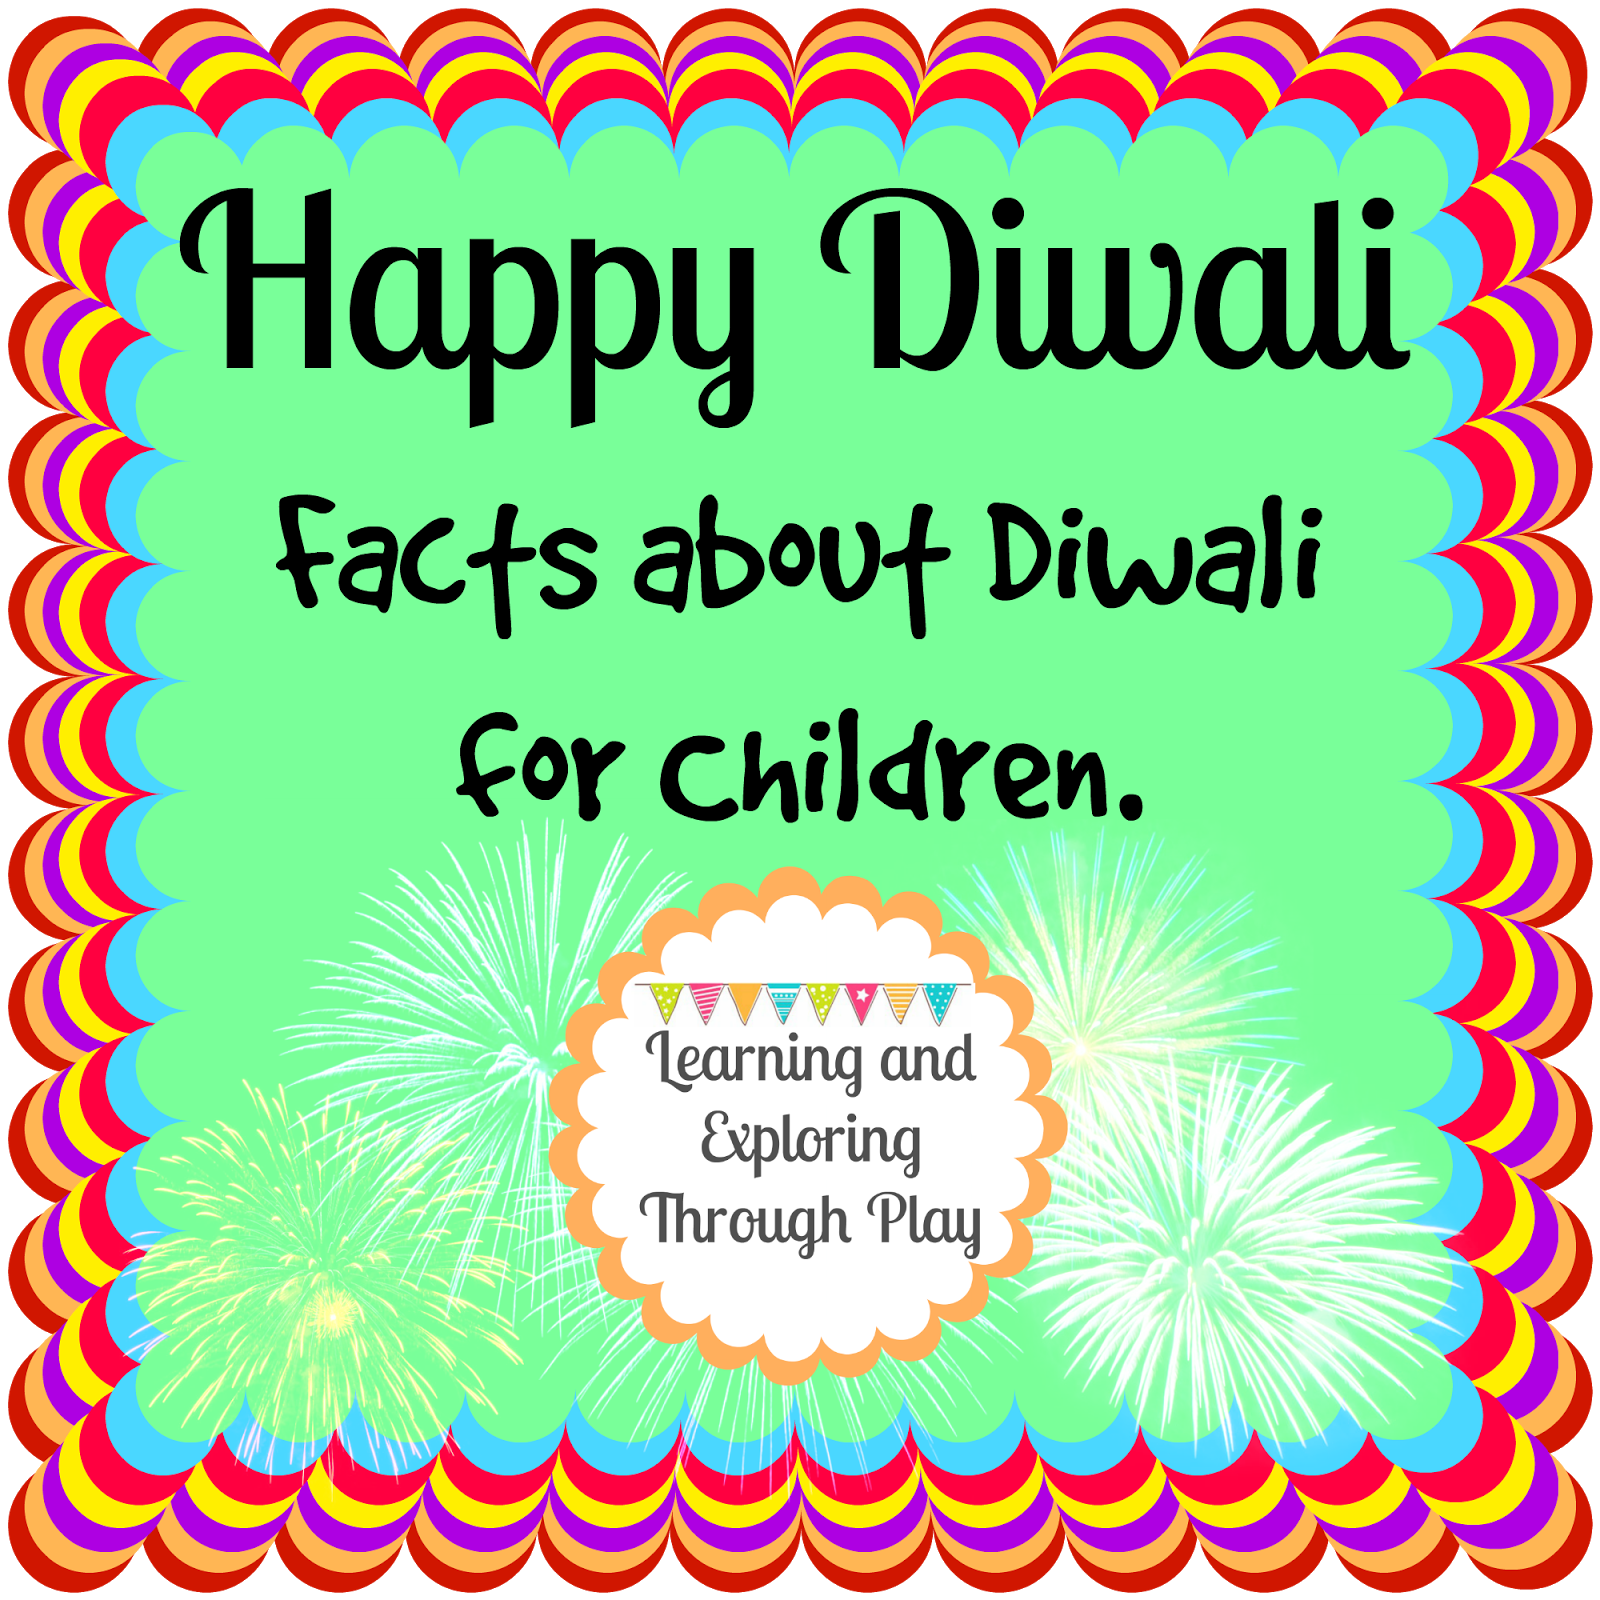 Lots Of Fun Activities Arts Crafts And Sensory Play Ideas For Kids Plenty Of Inspiration For Children Learnin Diwali Facts Diwali Activities Diwali For Kids [ 1600 x 1600 Pixel ]